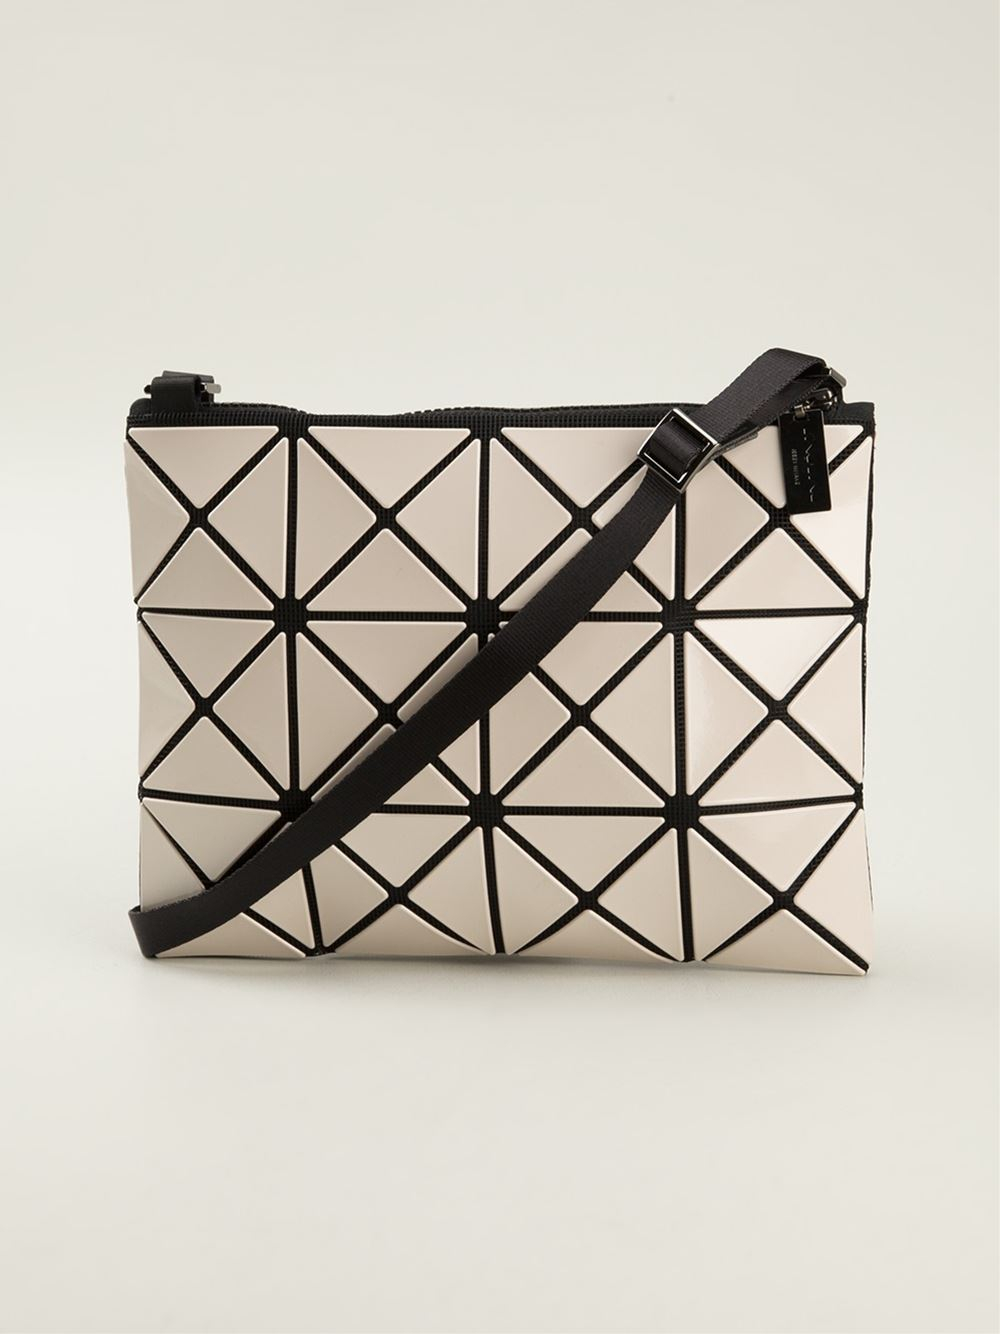 0b27765c7b96 Lyst - Bao Bao Issey Miyake Prism Basic Cross Body Bag in White